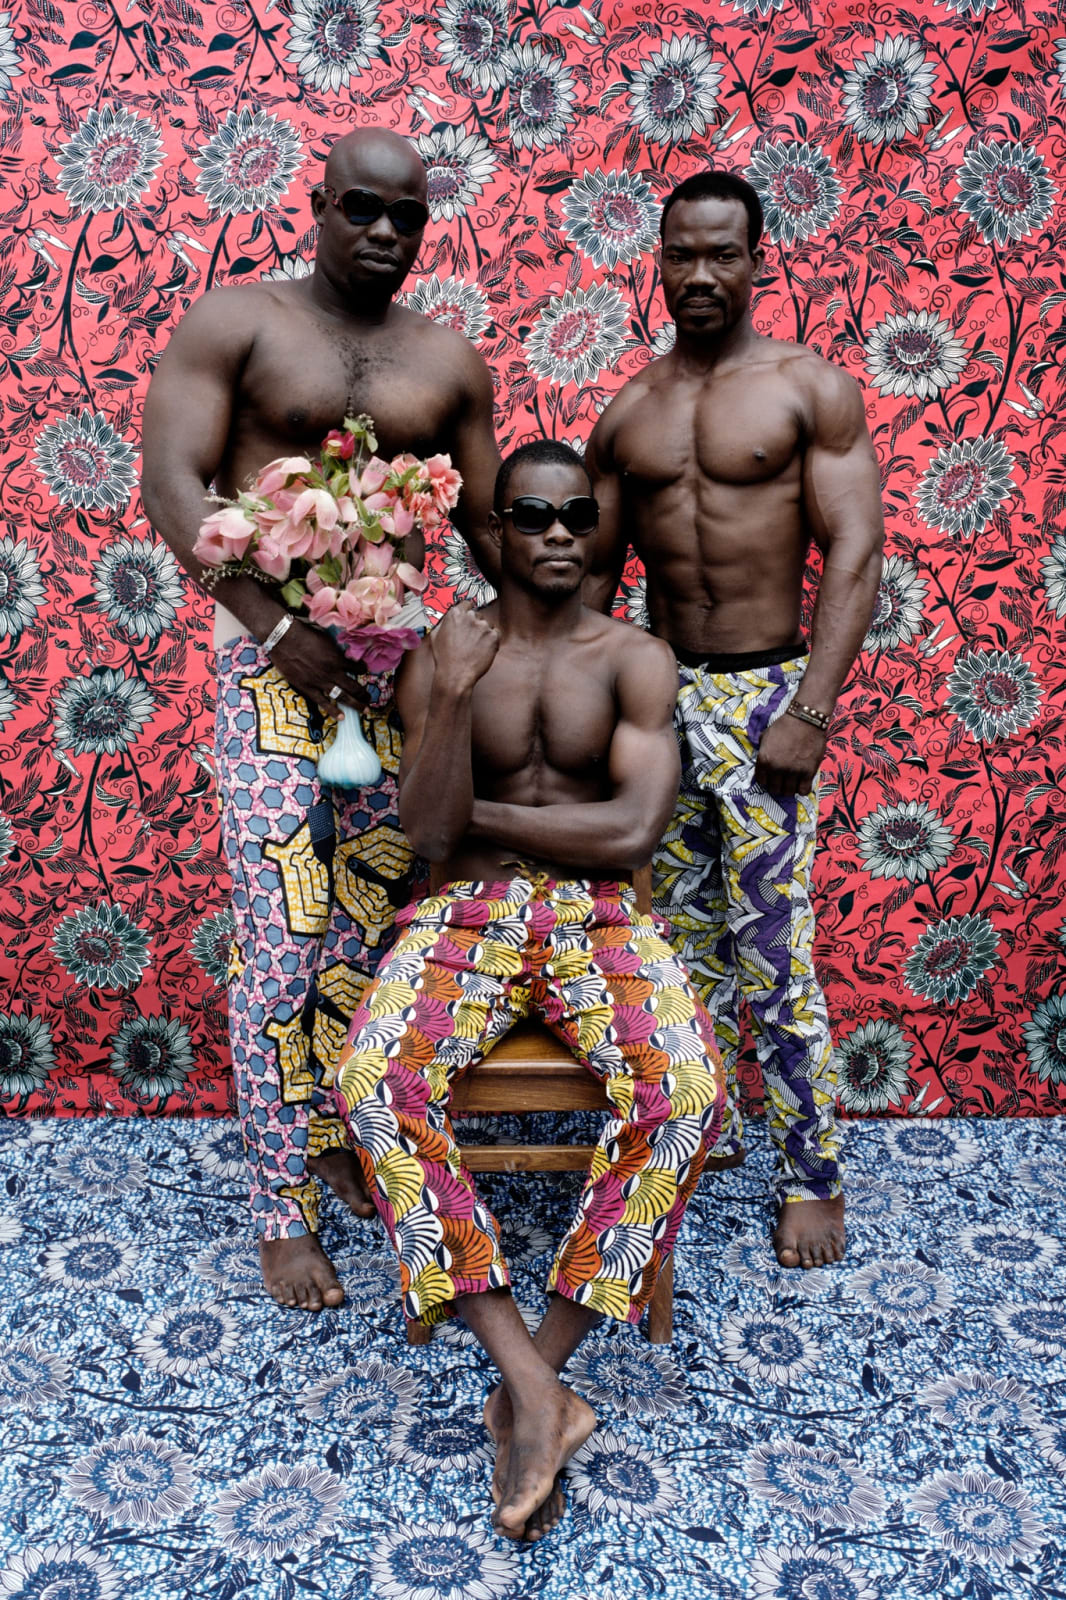 Leonce Raphael Agbodjelou, Untitled (Musclemen series), 2012, C - print